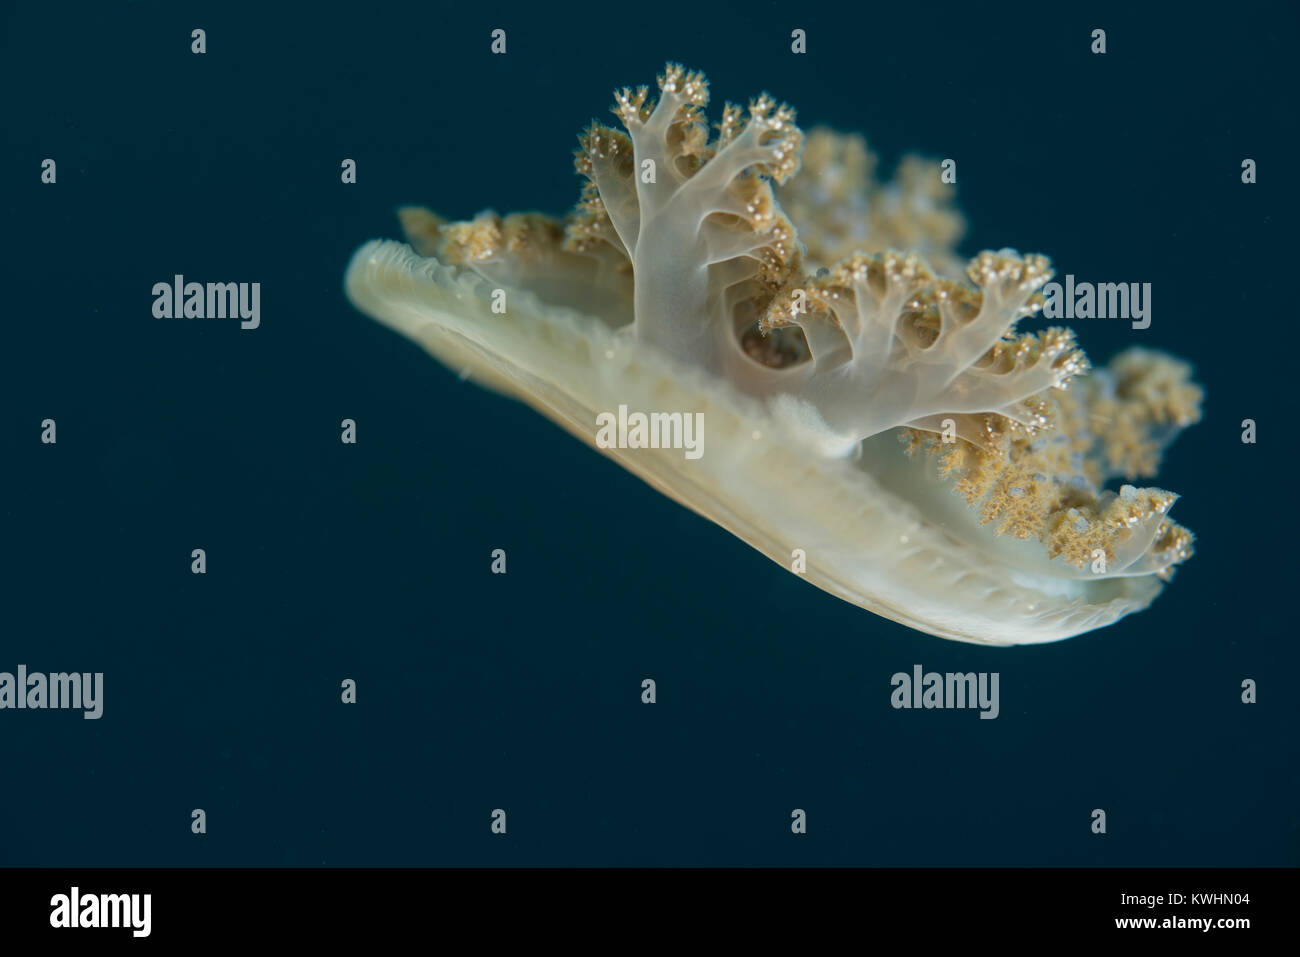 Upside-down jellyfish moving through the water - Stock Image